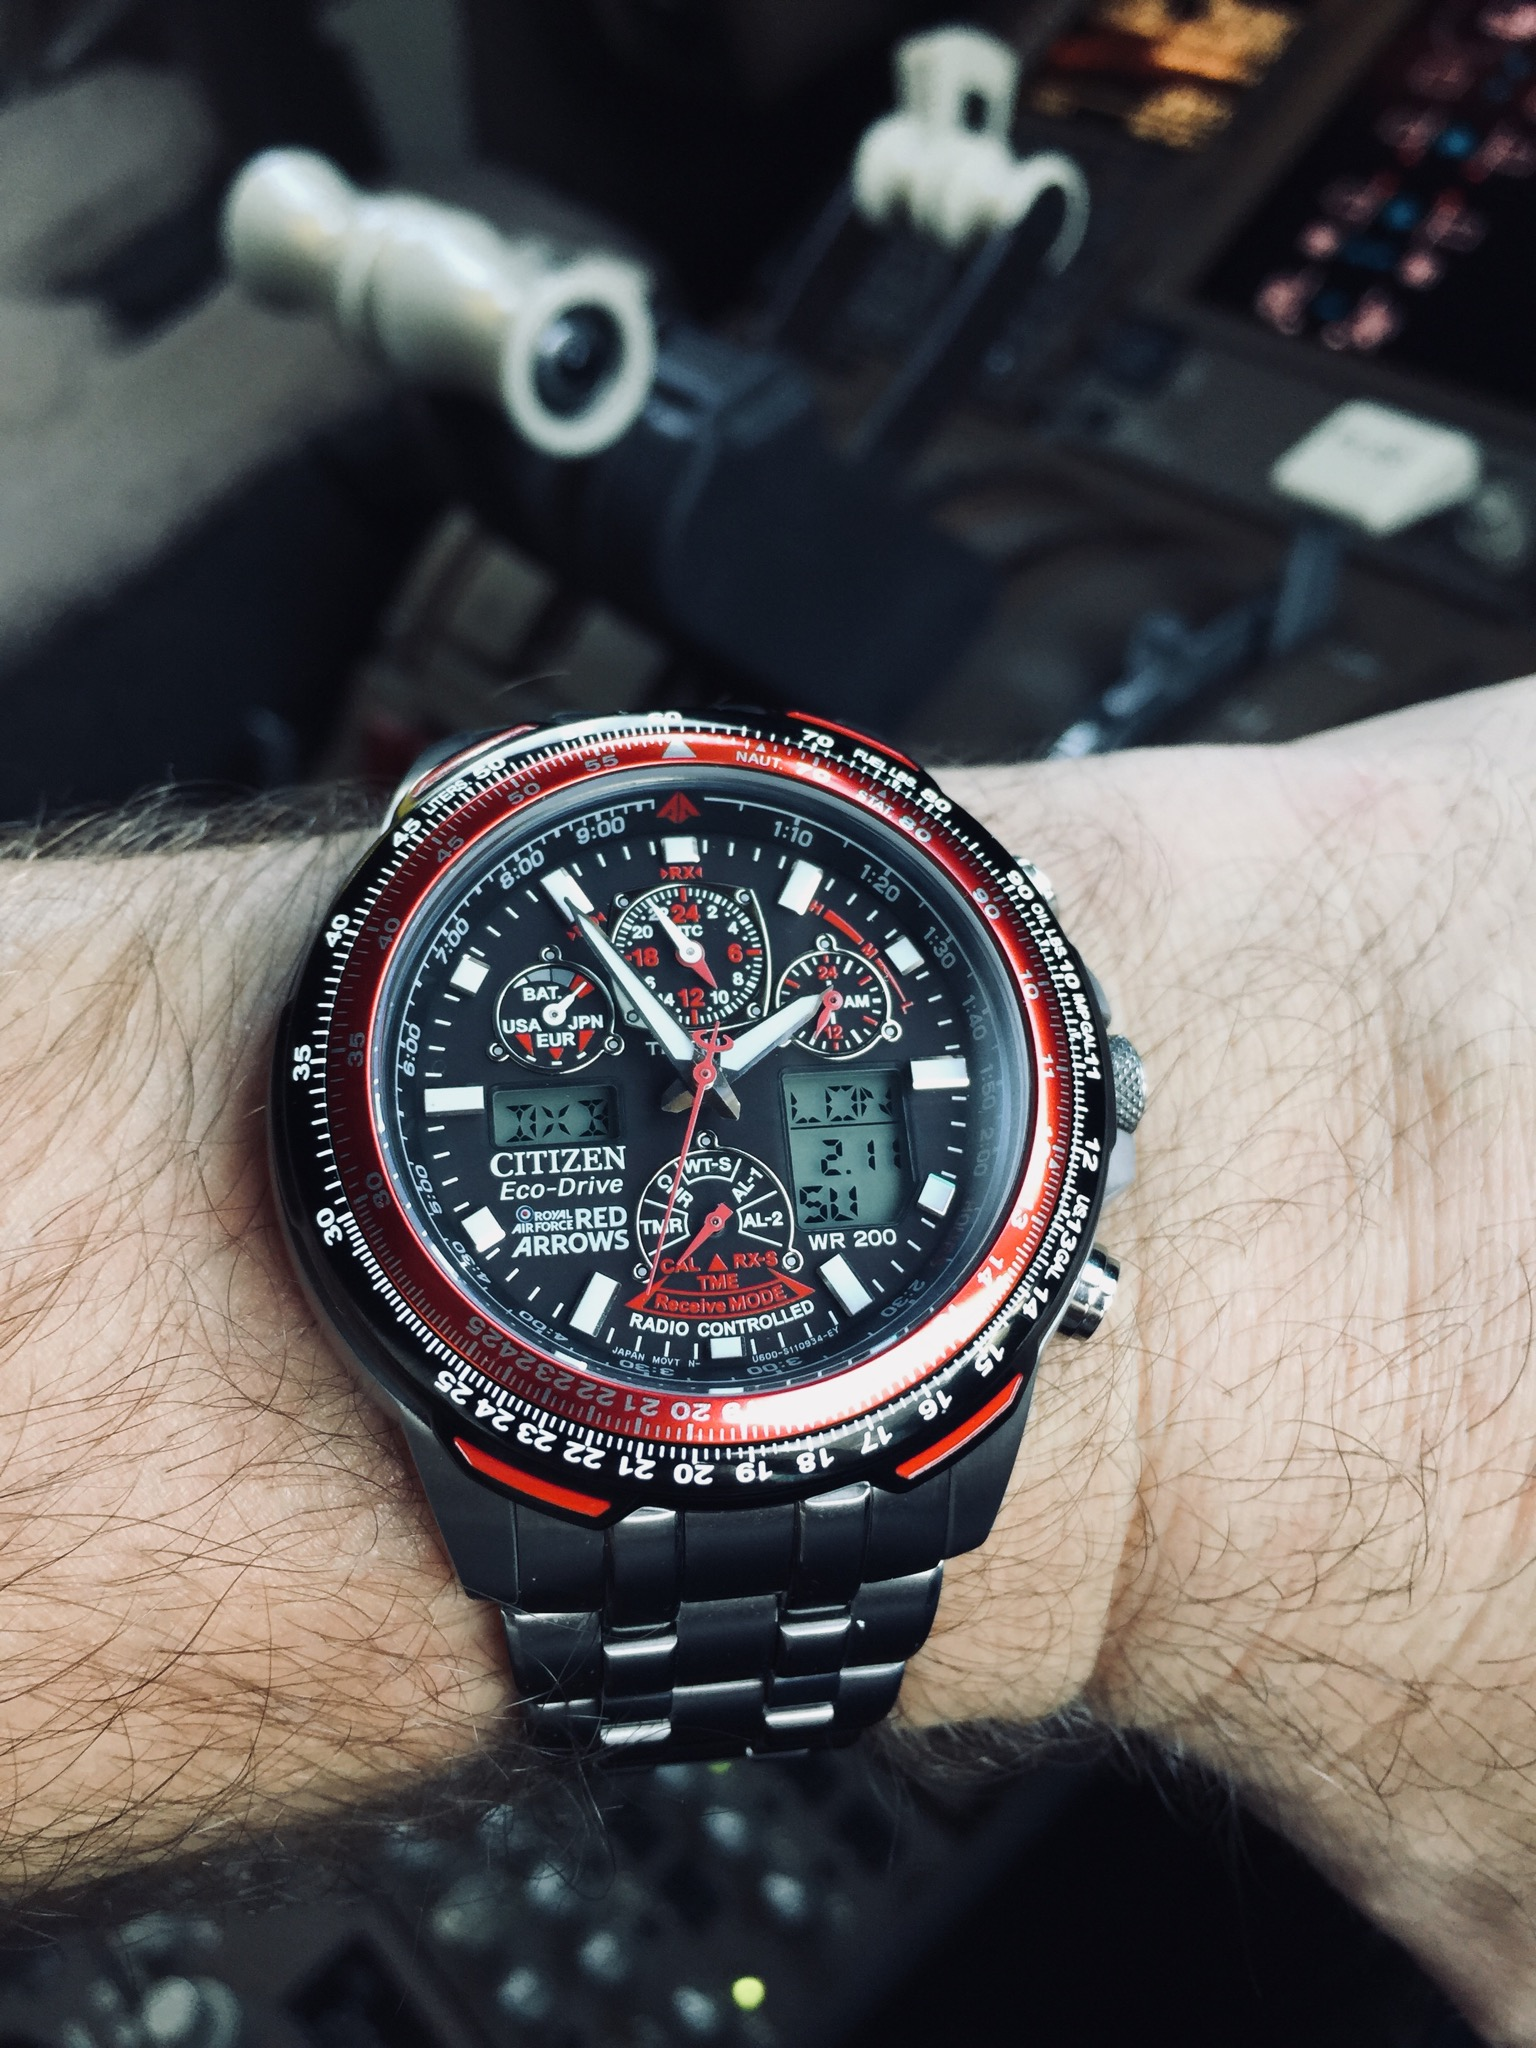 f4778cc7d5c9c Ive been an airline pilot for over 10 years and Ive never had a watch as  good as the Citizen Skyhawk A-T. It looks stunning with its lightweight  titanium ...